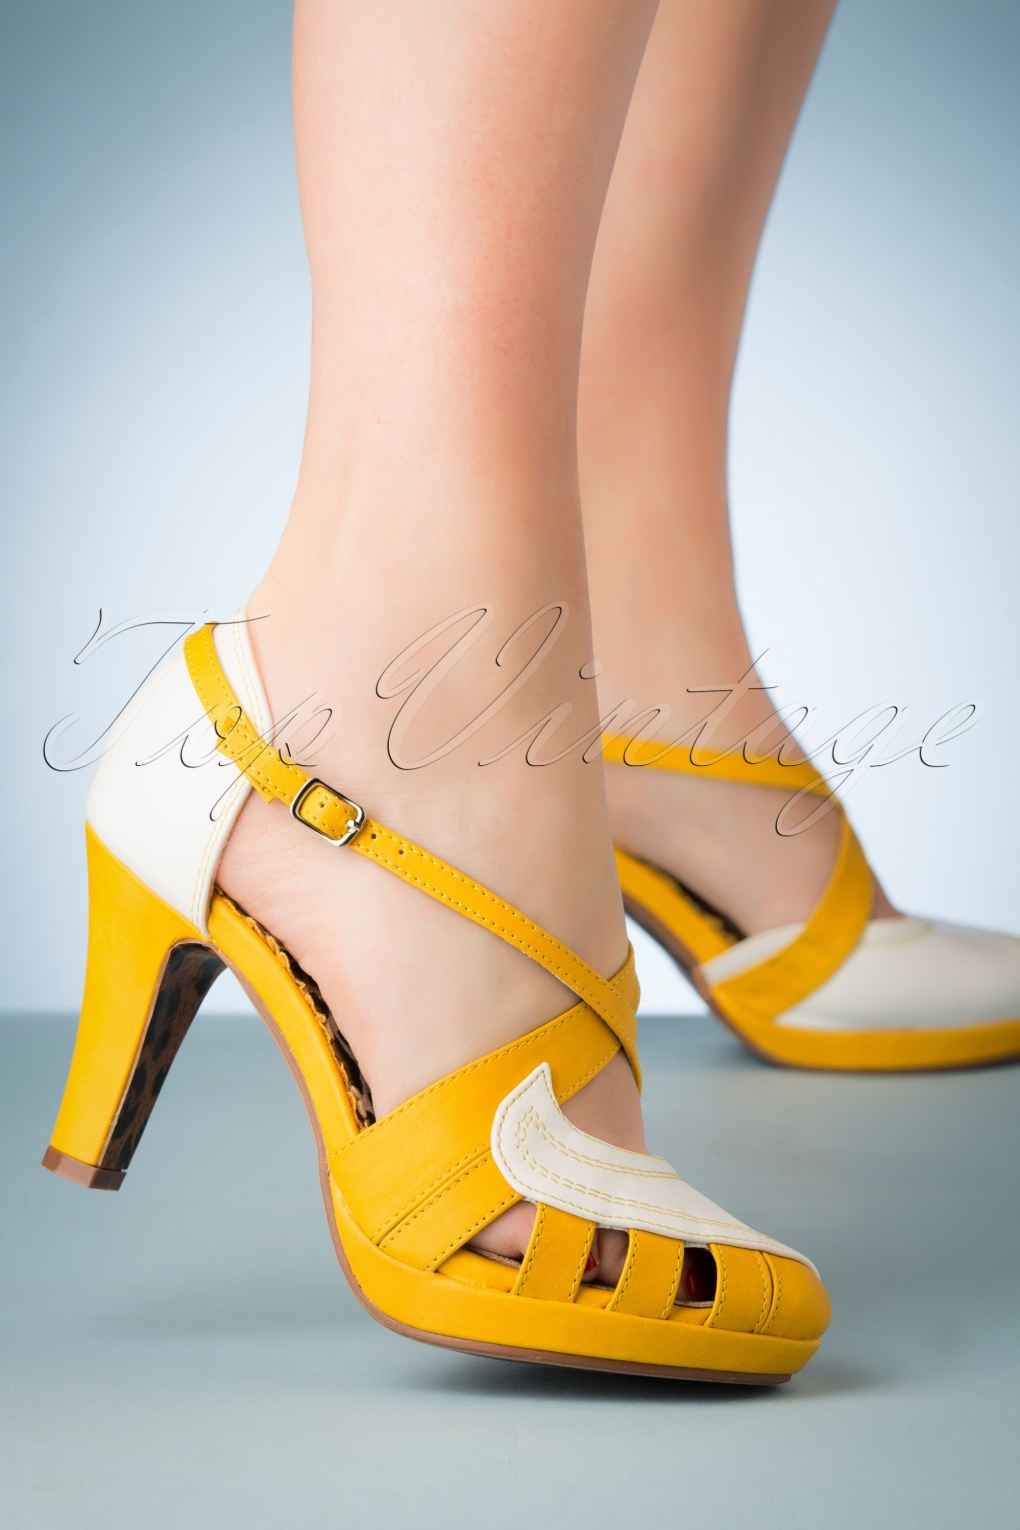 Pin Up Shoes- Heels, Pumps & Flats 50s Angie Pumps in White and Yellow �66.44 AT vintagedancer.com